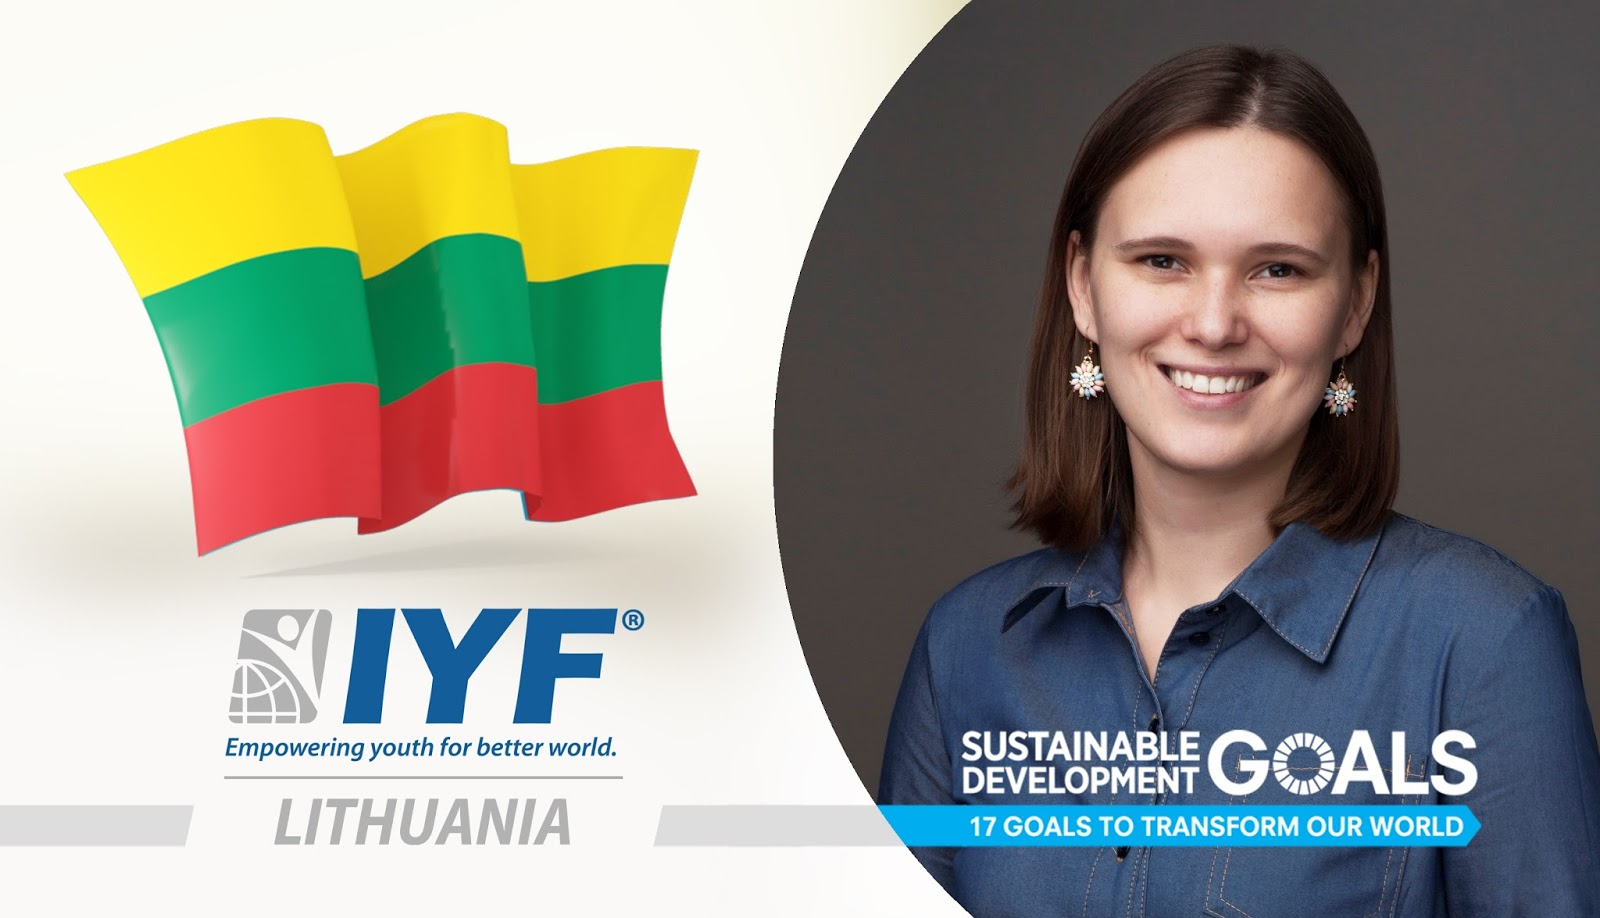 Laura Jonutytė, IYF Representative in Lithuania